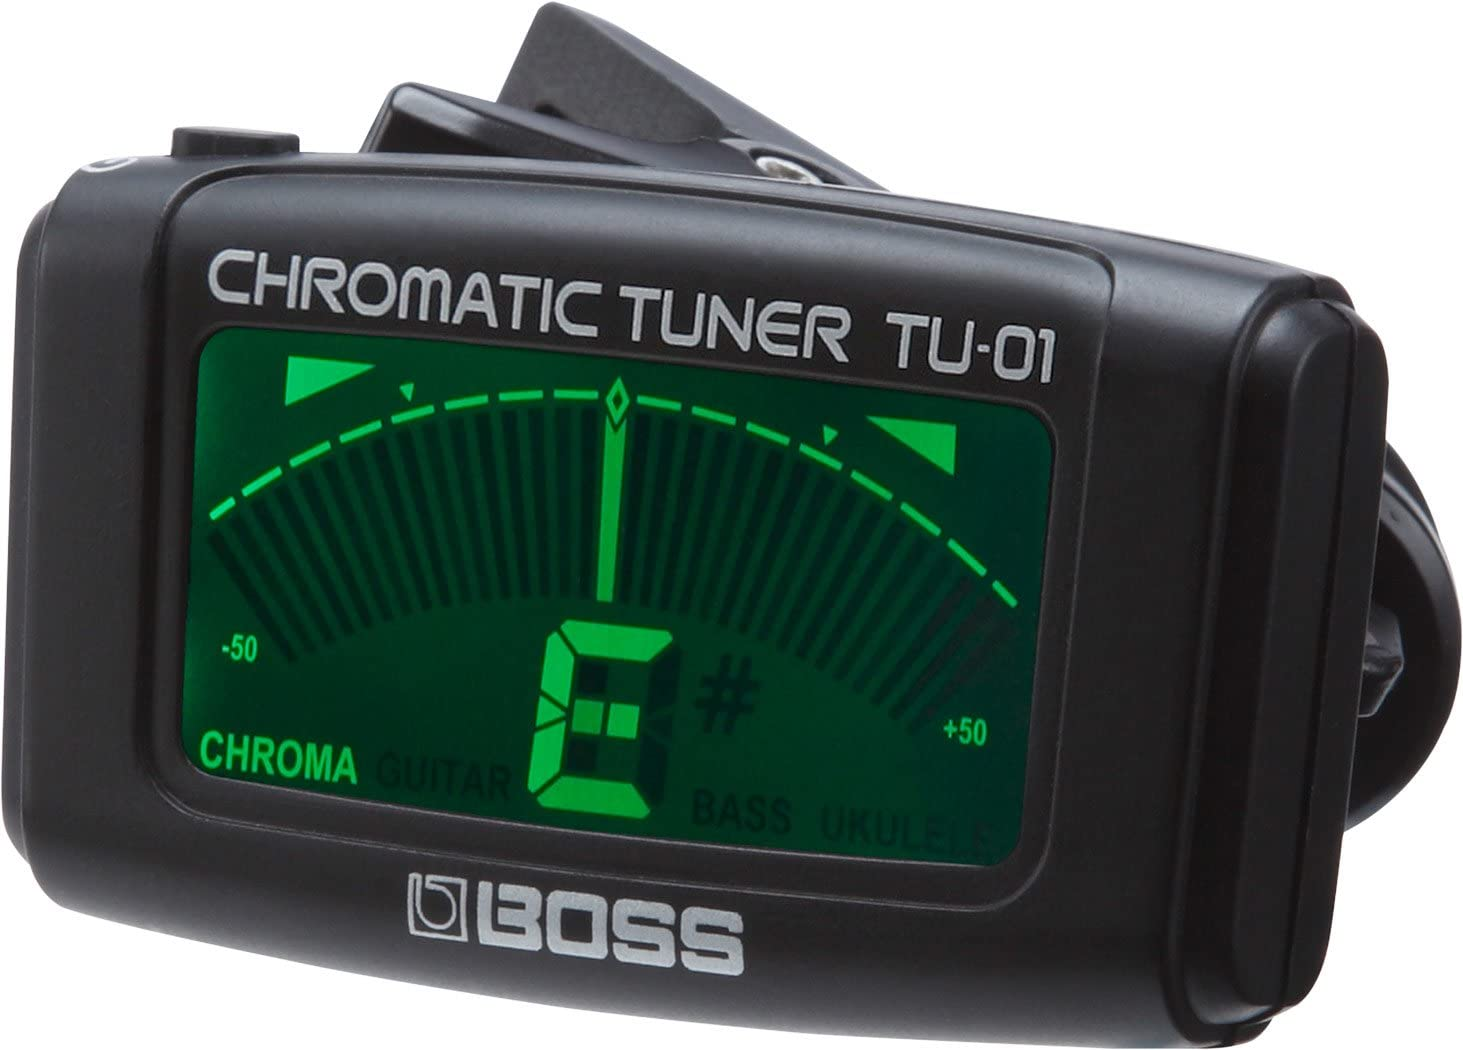 BOSS CHROMATIC TUNER tu-01